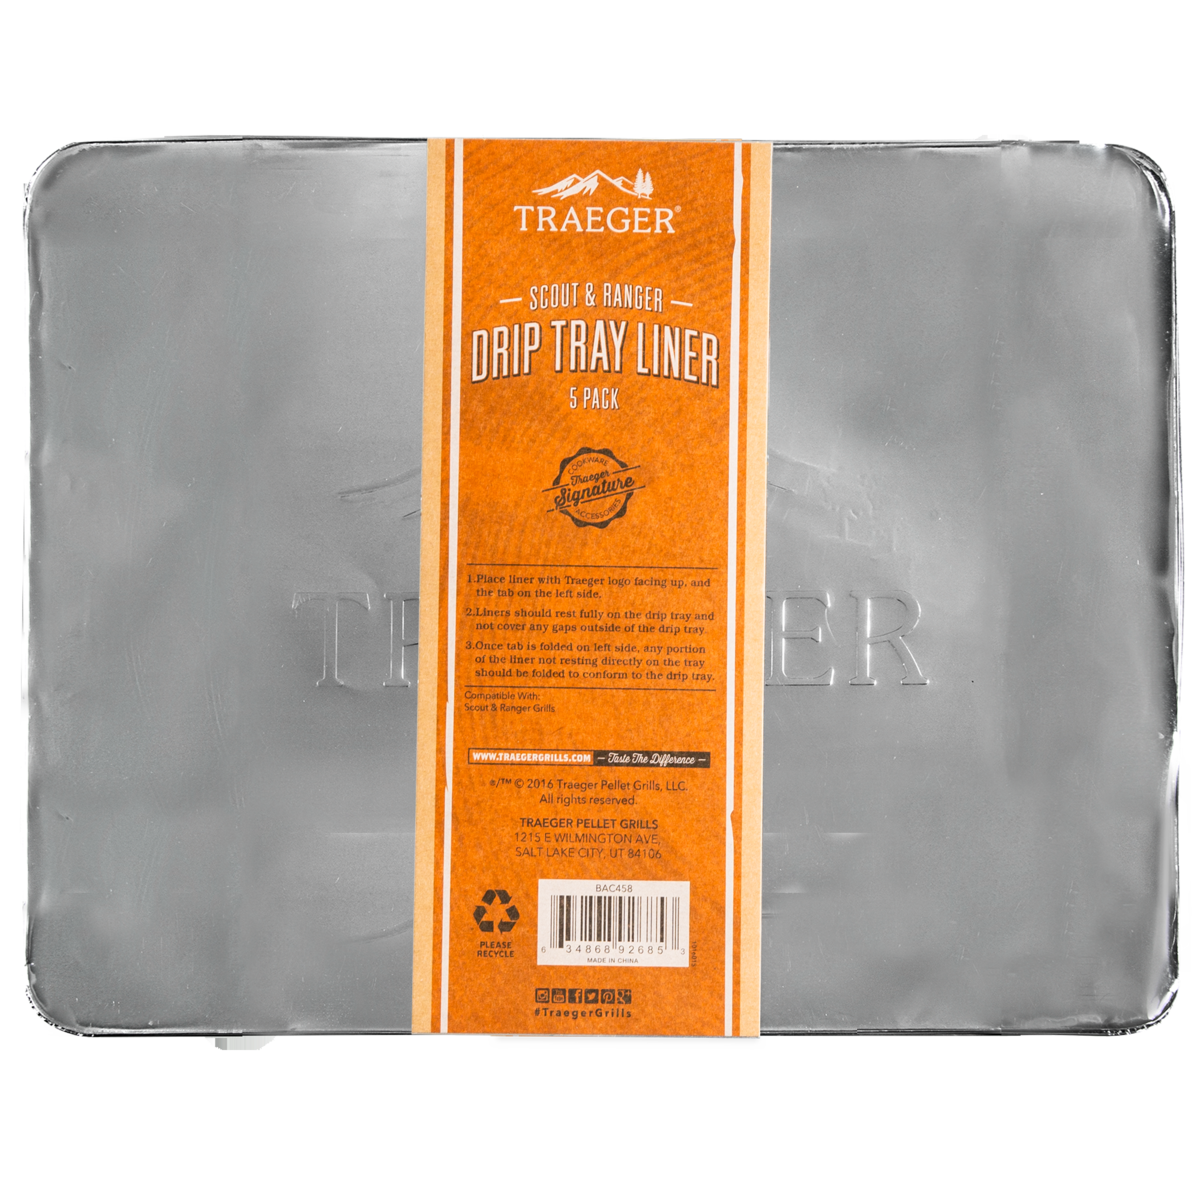 Traeger Drip Tray Liners 5 Pack - Ranger